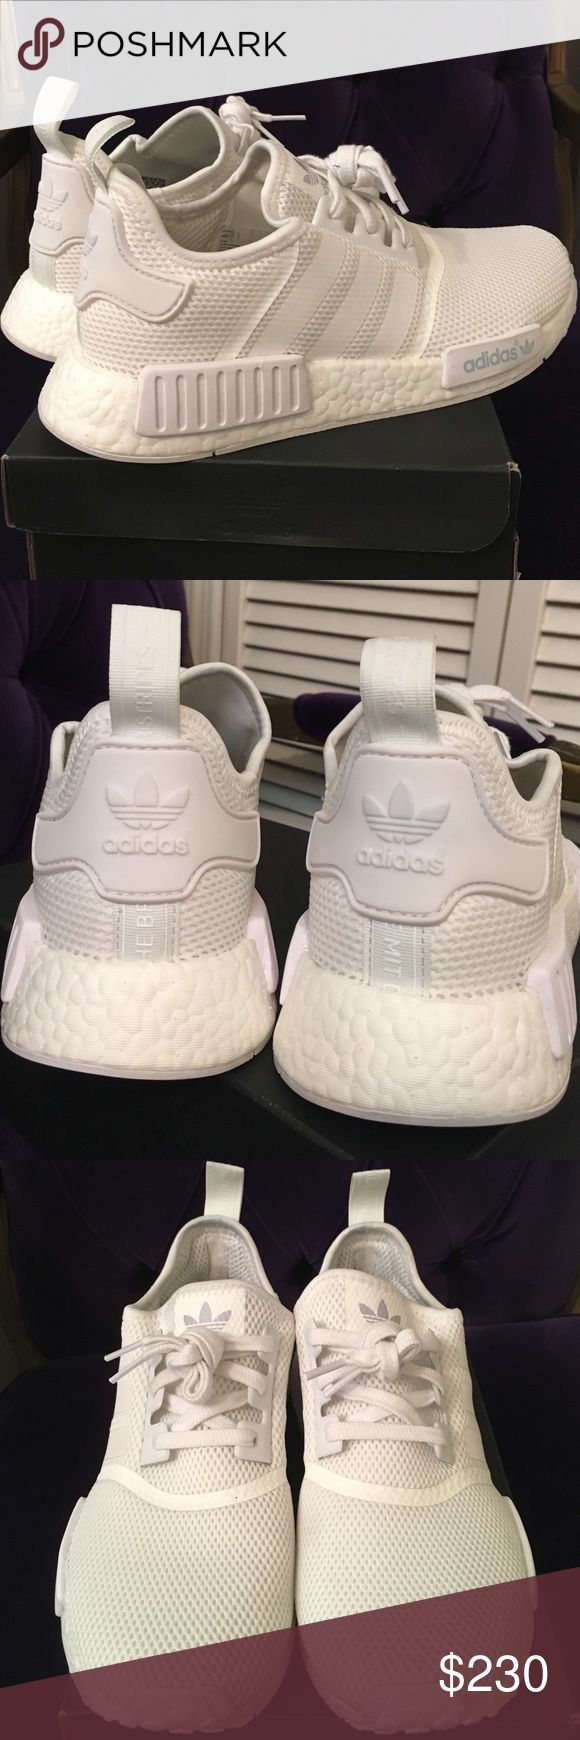 Adidas NMD White (Men) BRAND NEW - Originals Adidas NMD for Men / BRAND NEW / Never been used / ORIGINALS / White on White : Size 9 COMES IN ORIGINAL BOX Adidas Shoes Athletic Shoes